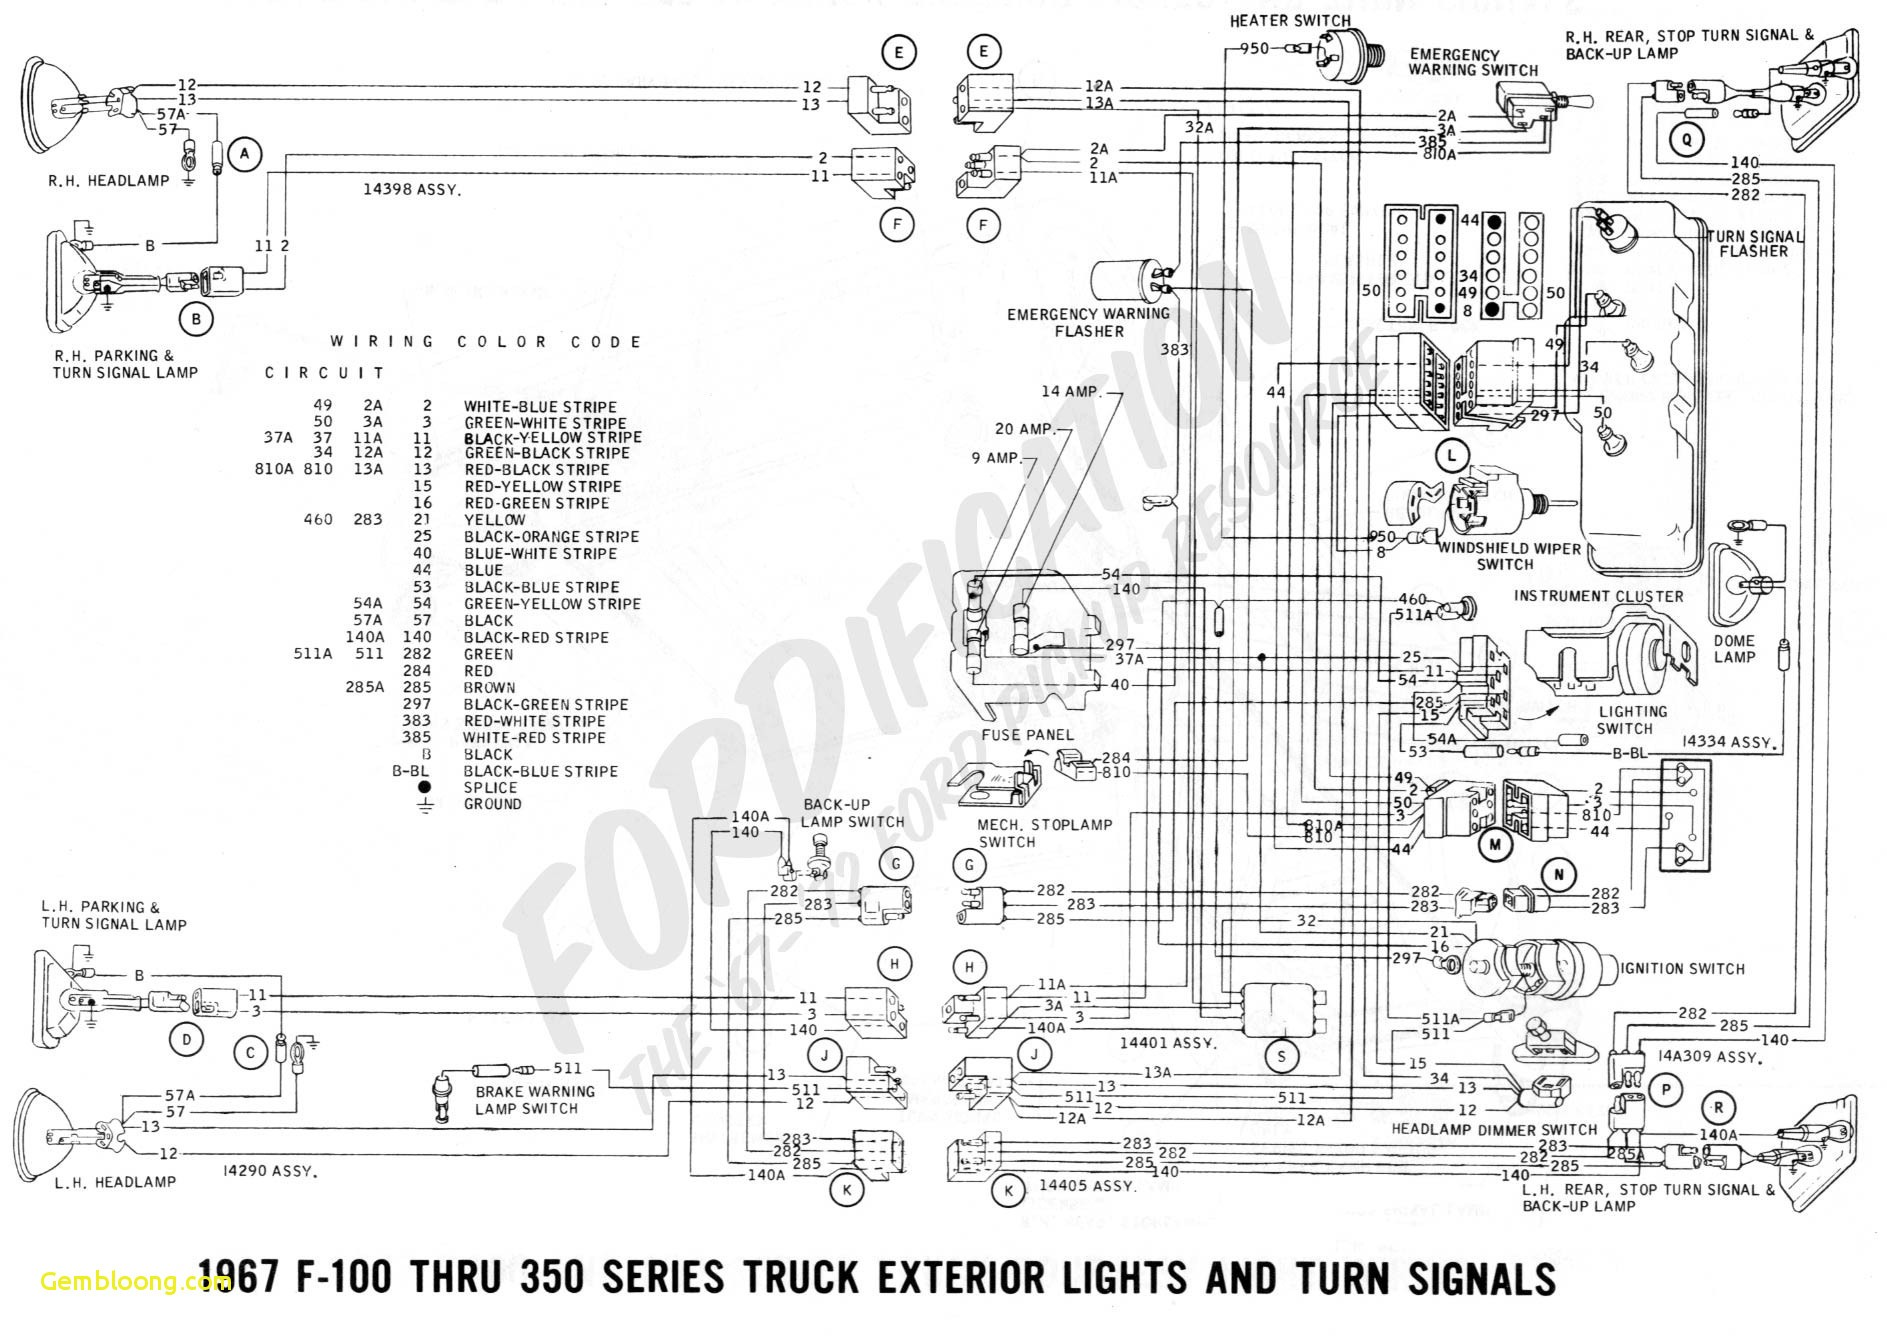 Car Engine Diagram for Dummies Download ford Trucks Wiring Diagrams ford F150 Wiring Diagrams Best Of Car Engine Diagram for Dummies